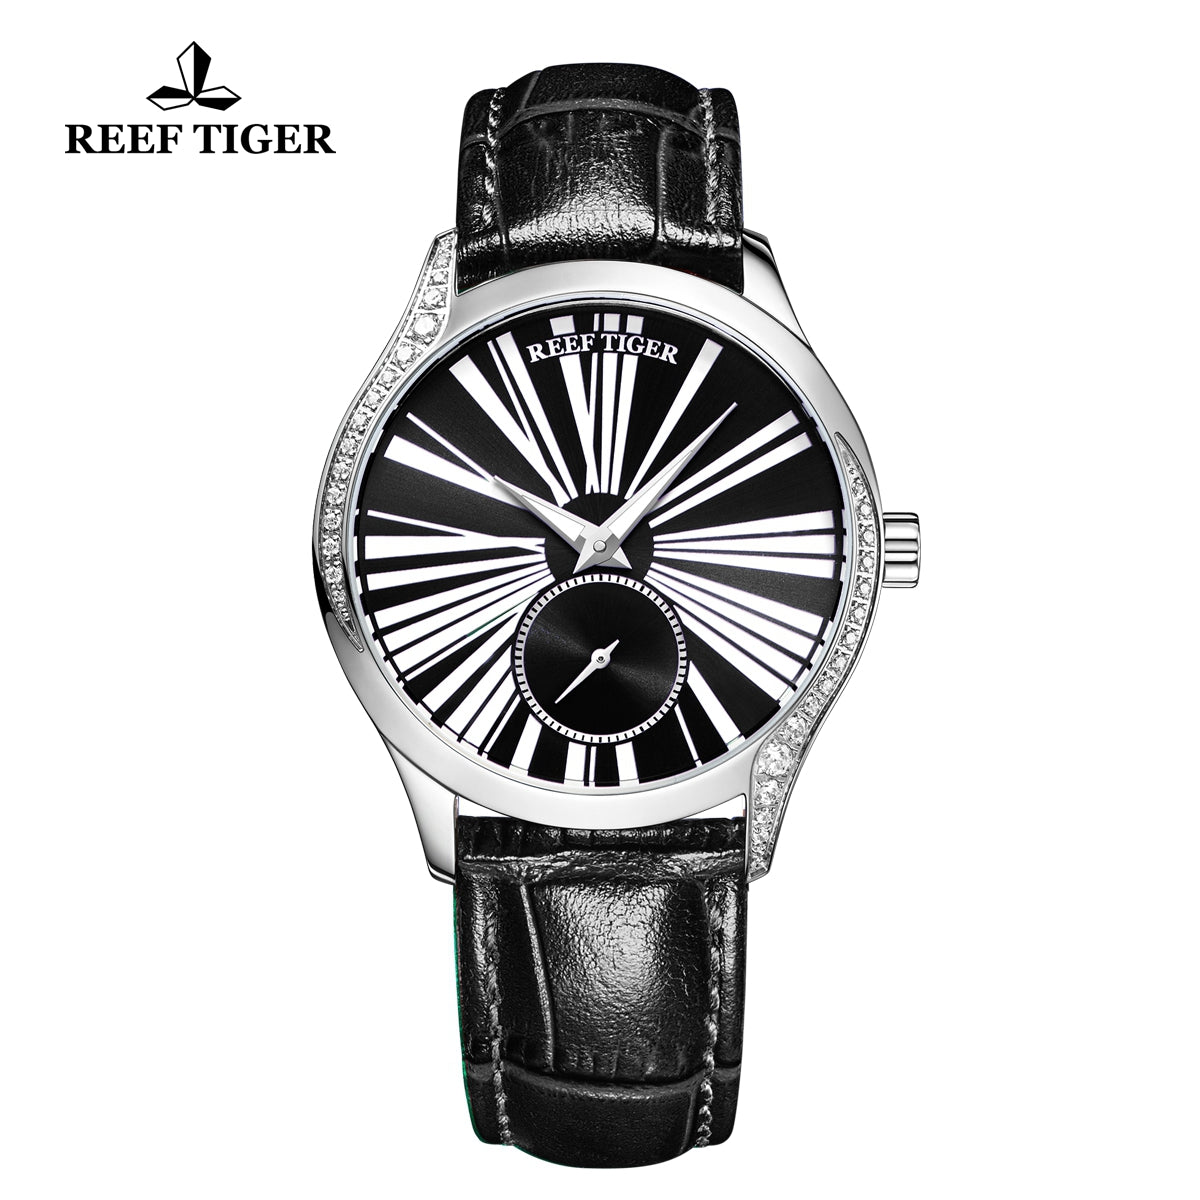 Reef Tiger Love Highness Fashion Men Steel Genuine Leather Strap Automatic Watches RGA1561-YBB